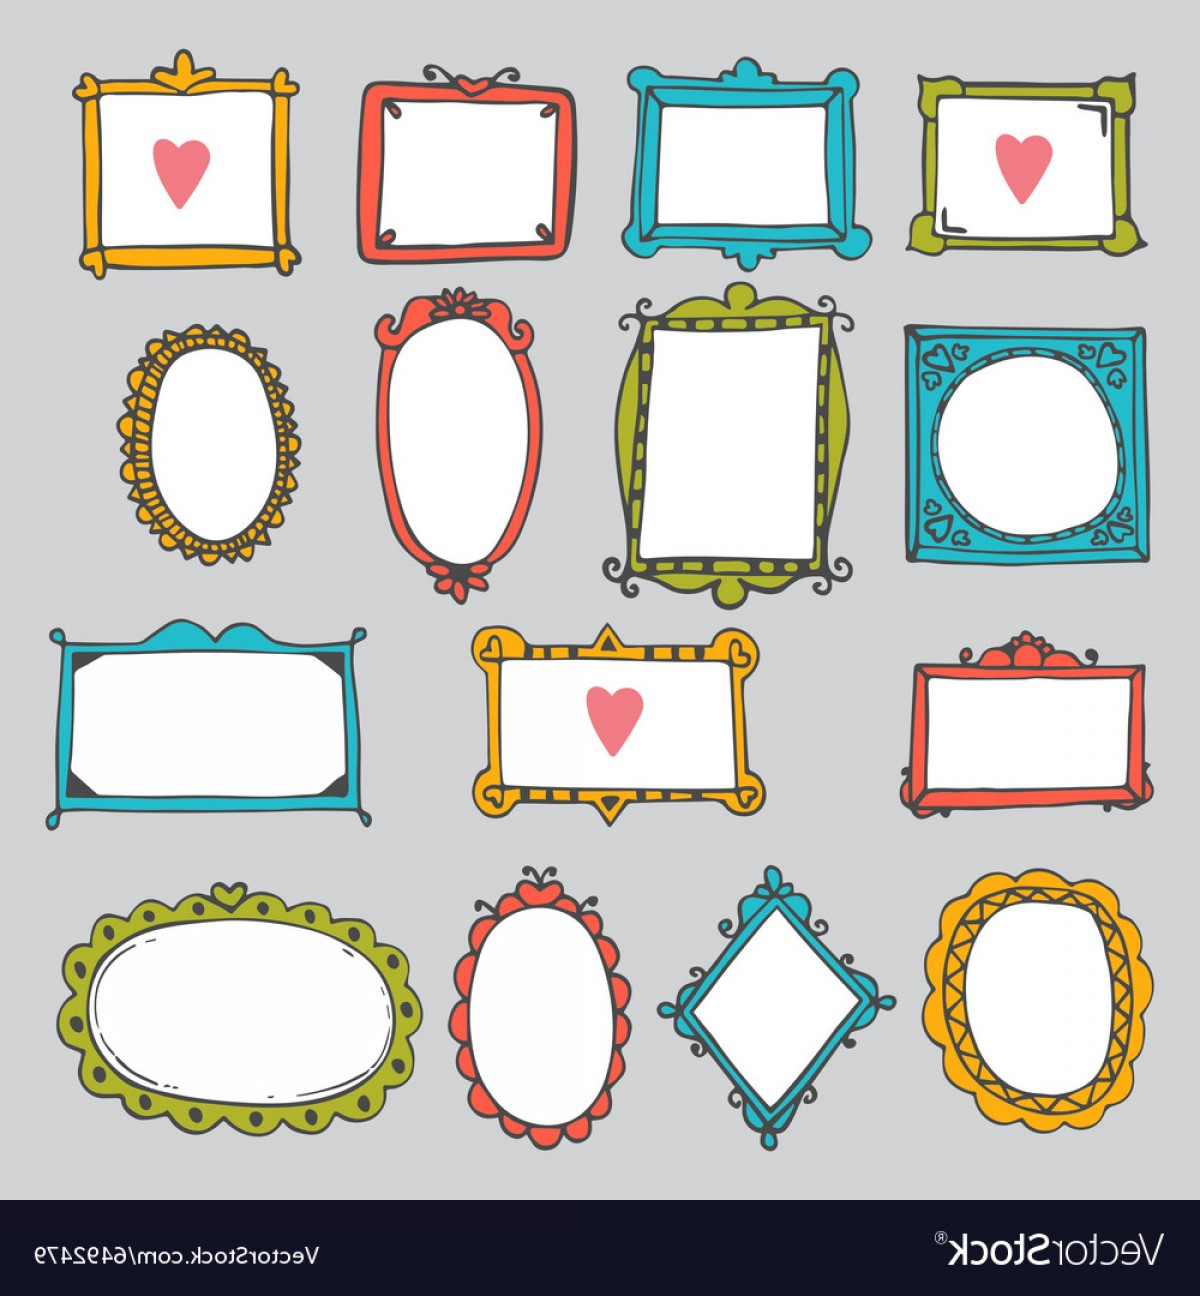 Cute Design Elements Vector Set: Set Of Hand Drawn Frames Cute Design Elements Vector